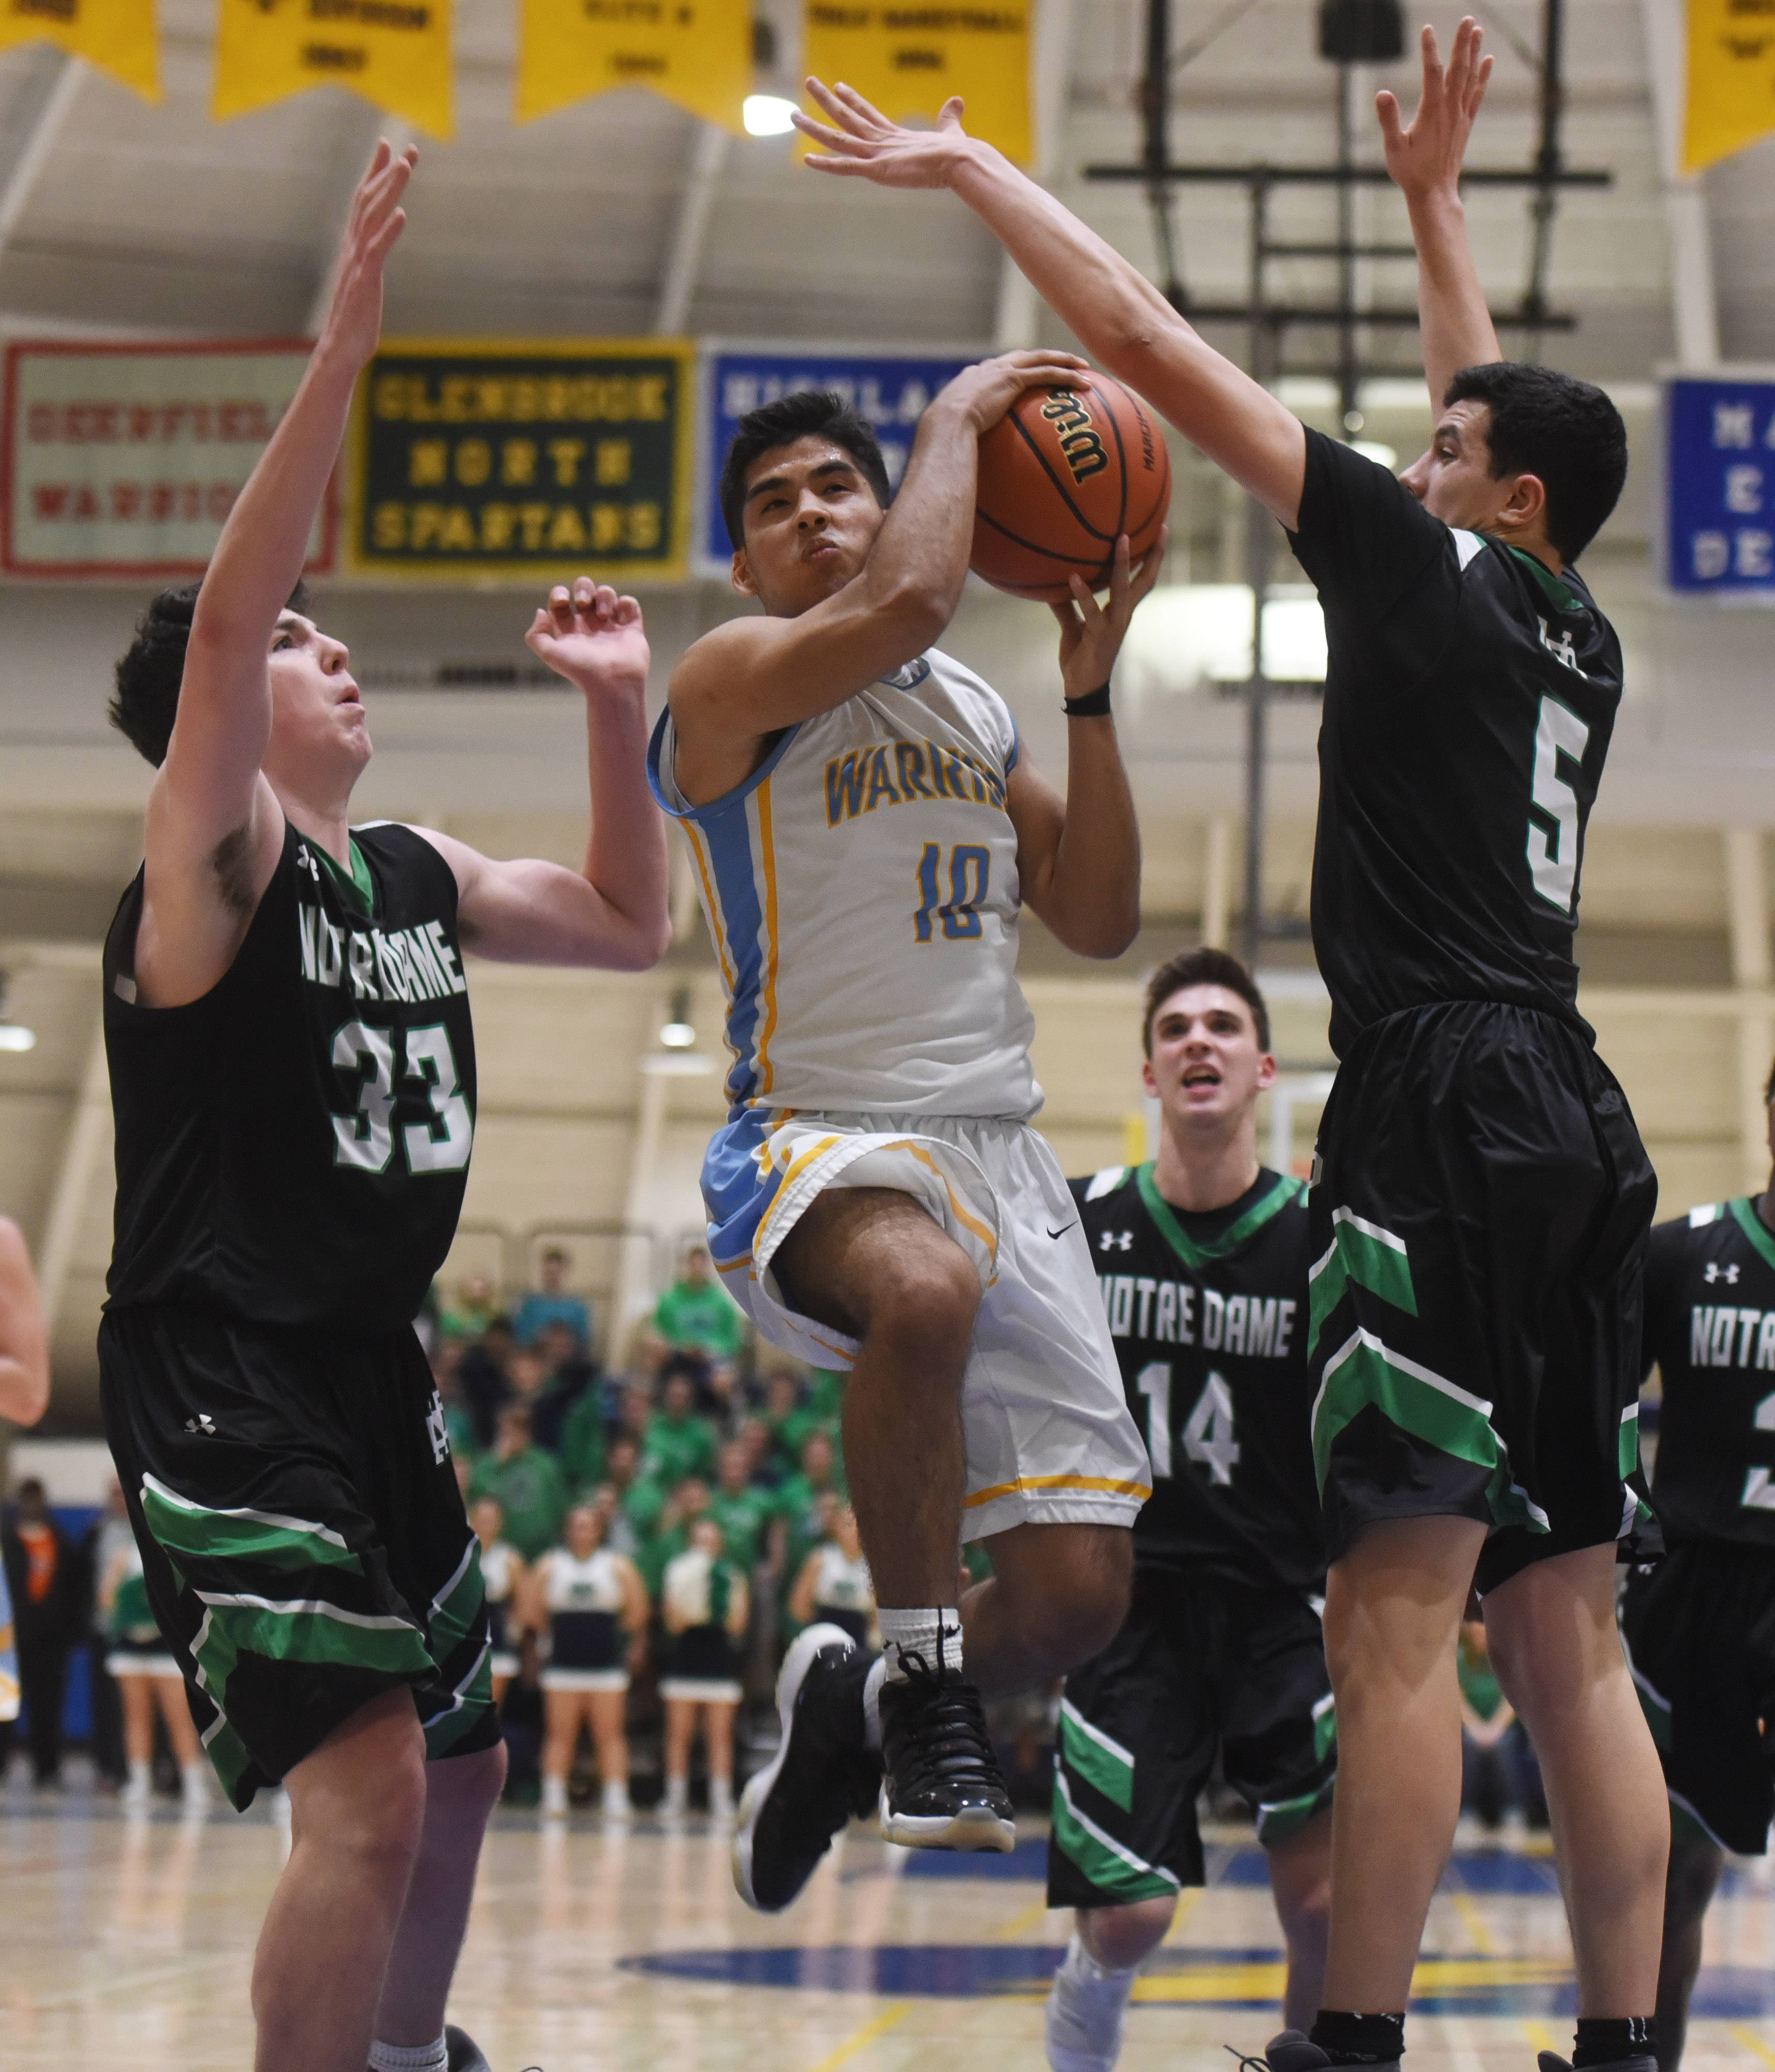 Maine West's Julian Dones drives for a basket between Notre Dame's Troy D'Amico, left, and Jason Bergstrom during the Glenbrook South regional semifinal in Glenview on Tuesday.